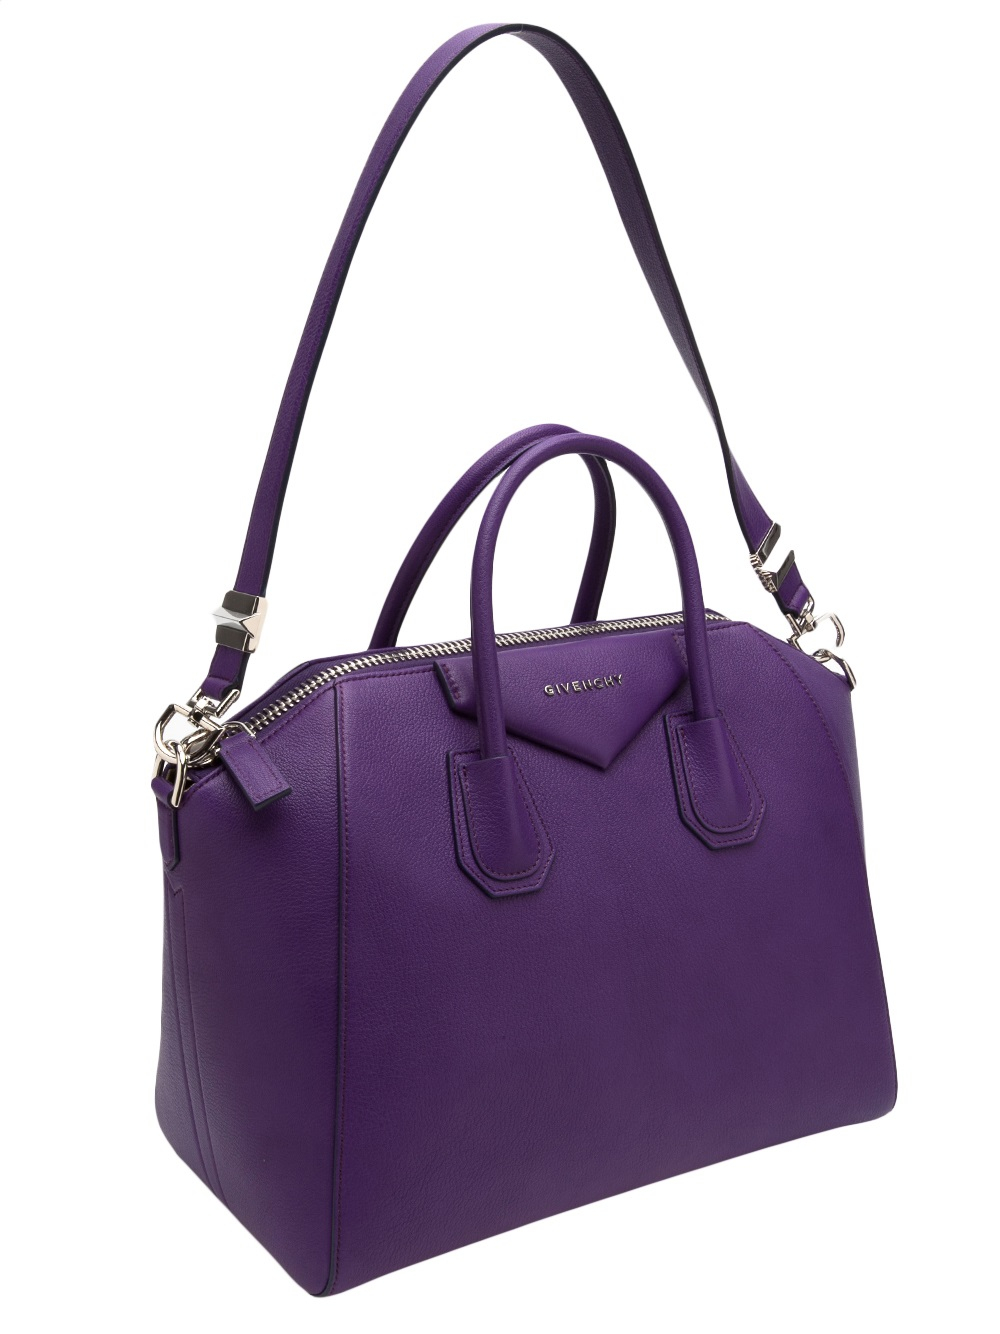 Givenchy Antigona Medium Bag in Purple (pink  purple)